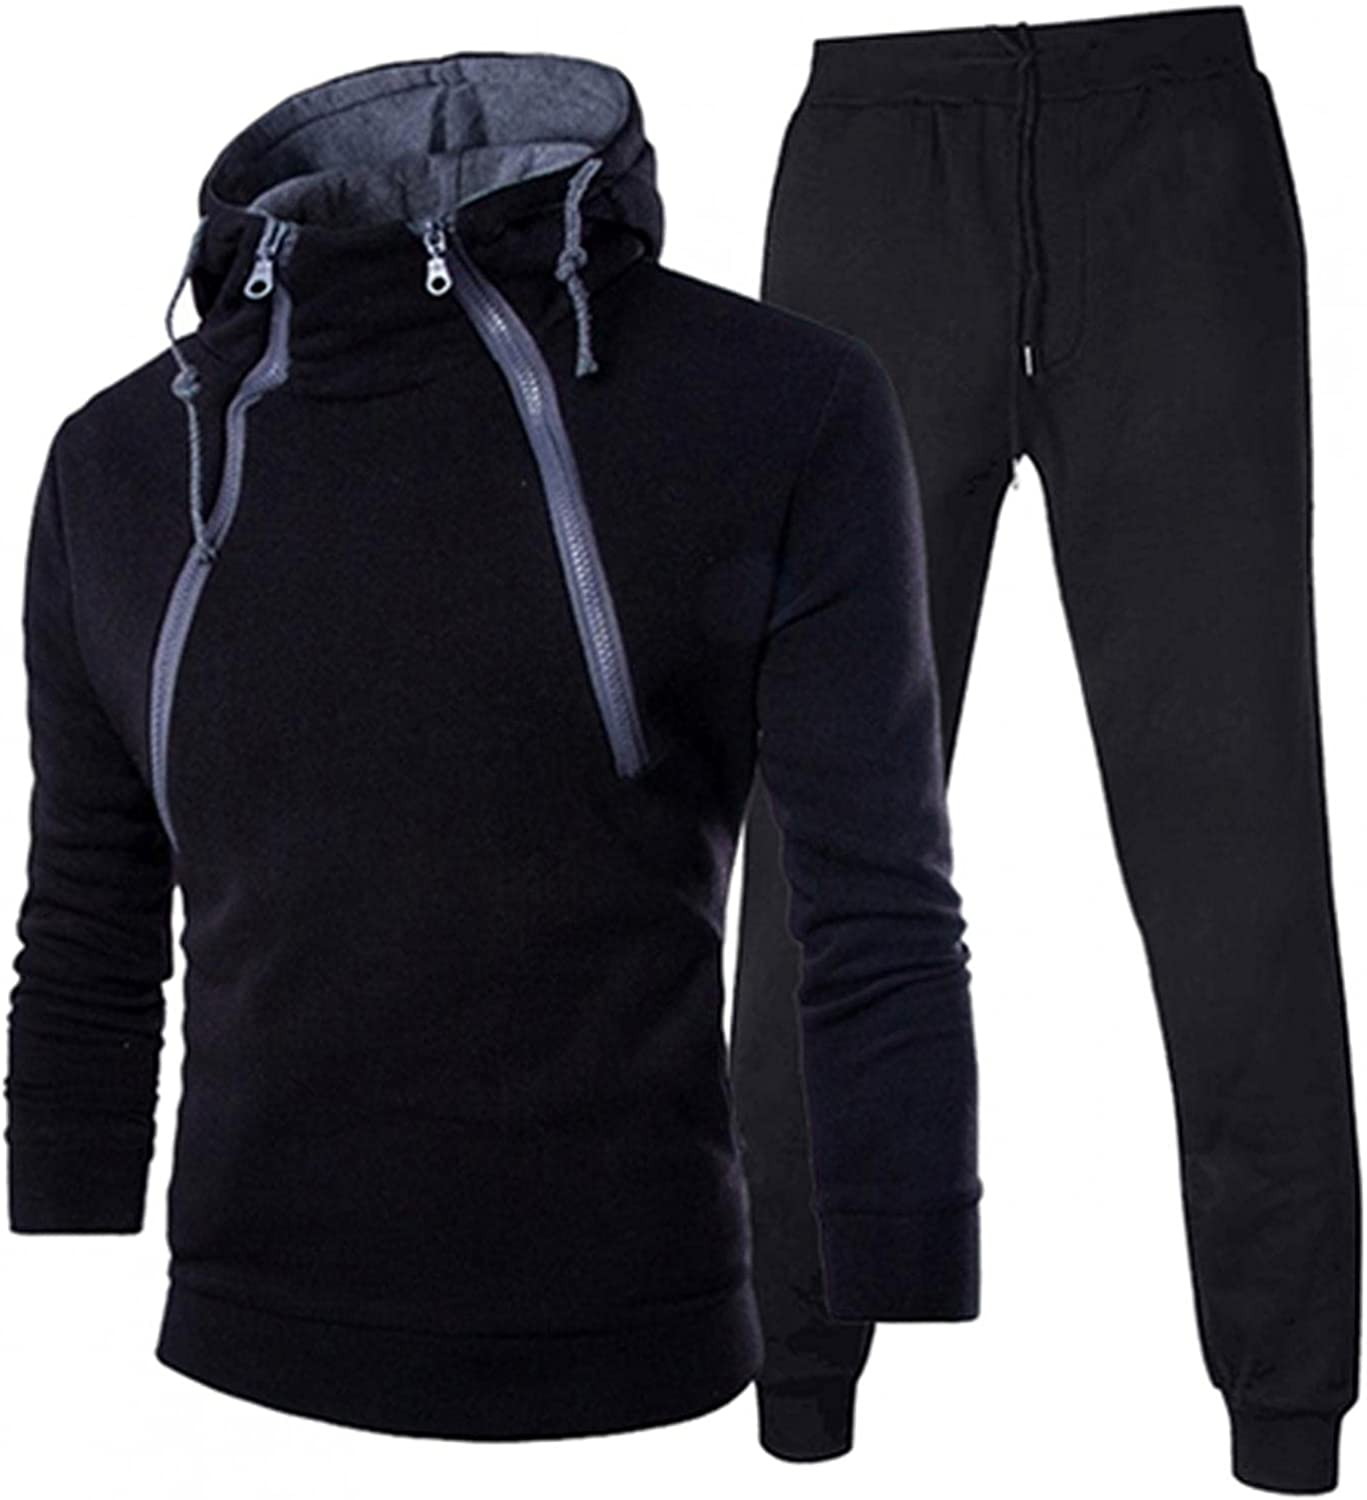 FUNEY Men's Hooded Athletic Tracksuit Zipp Excellence Fashion Double Low price Casual